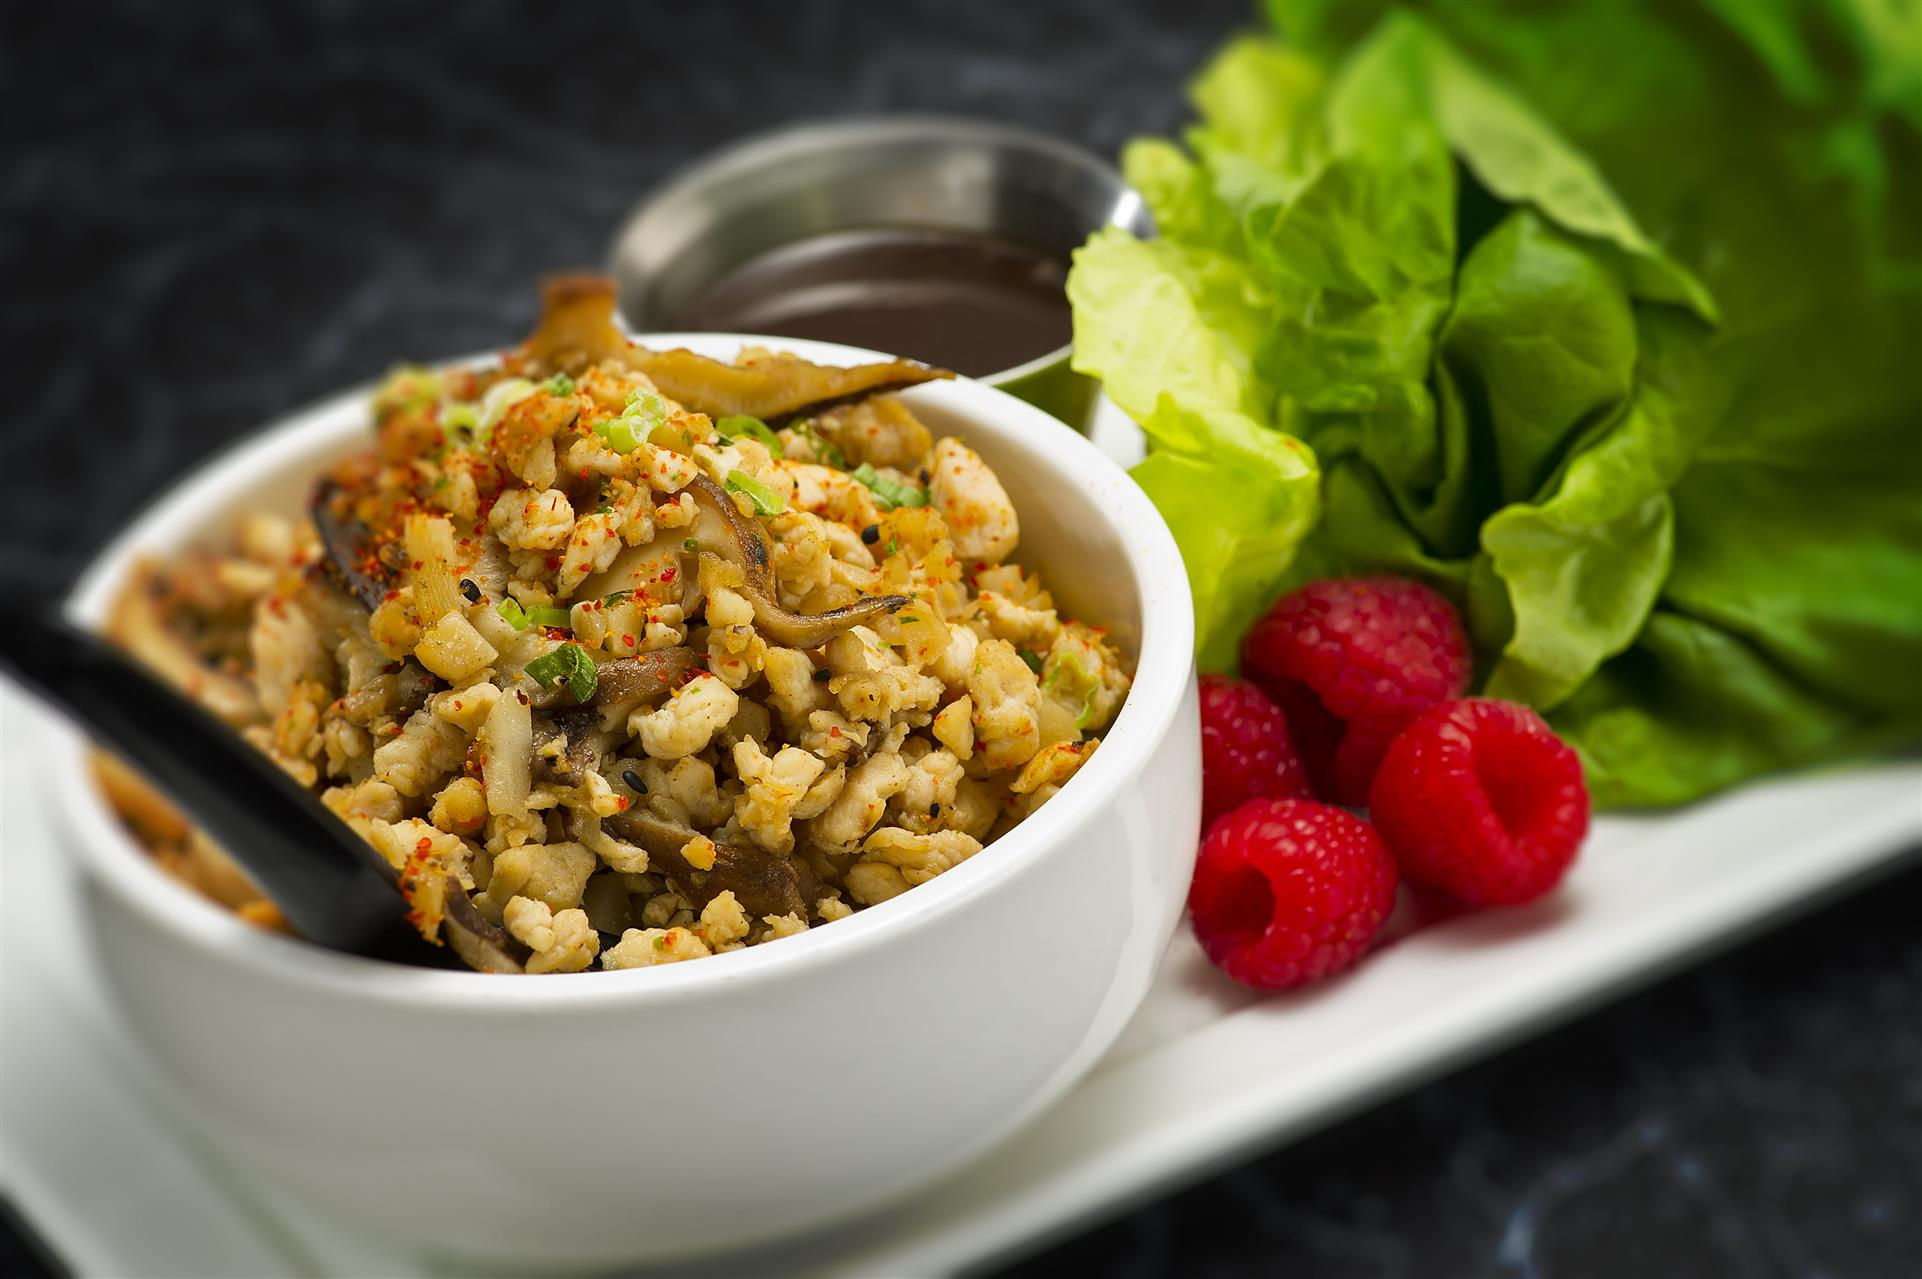 spiced rice with fish mixed in served with a brown sauce